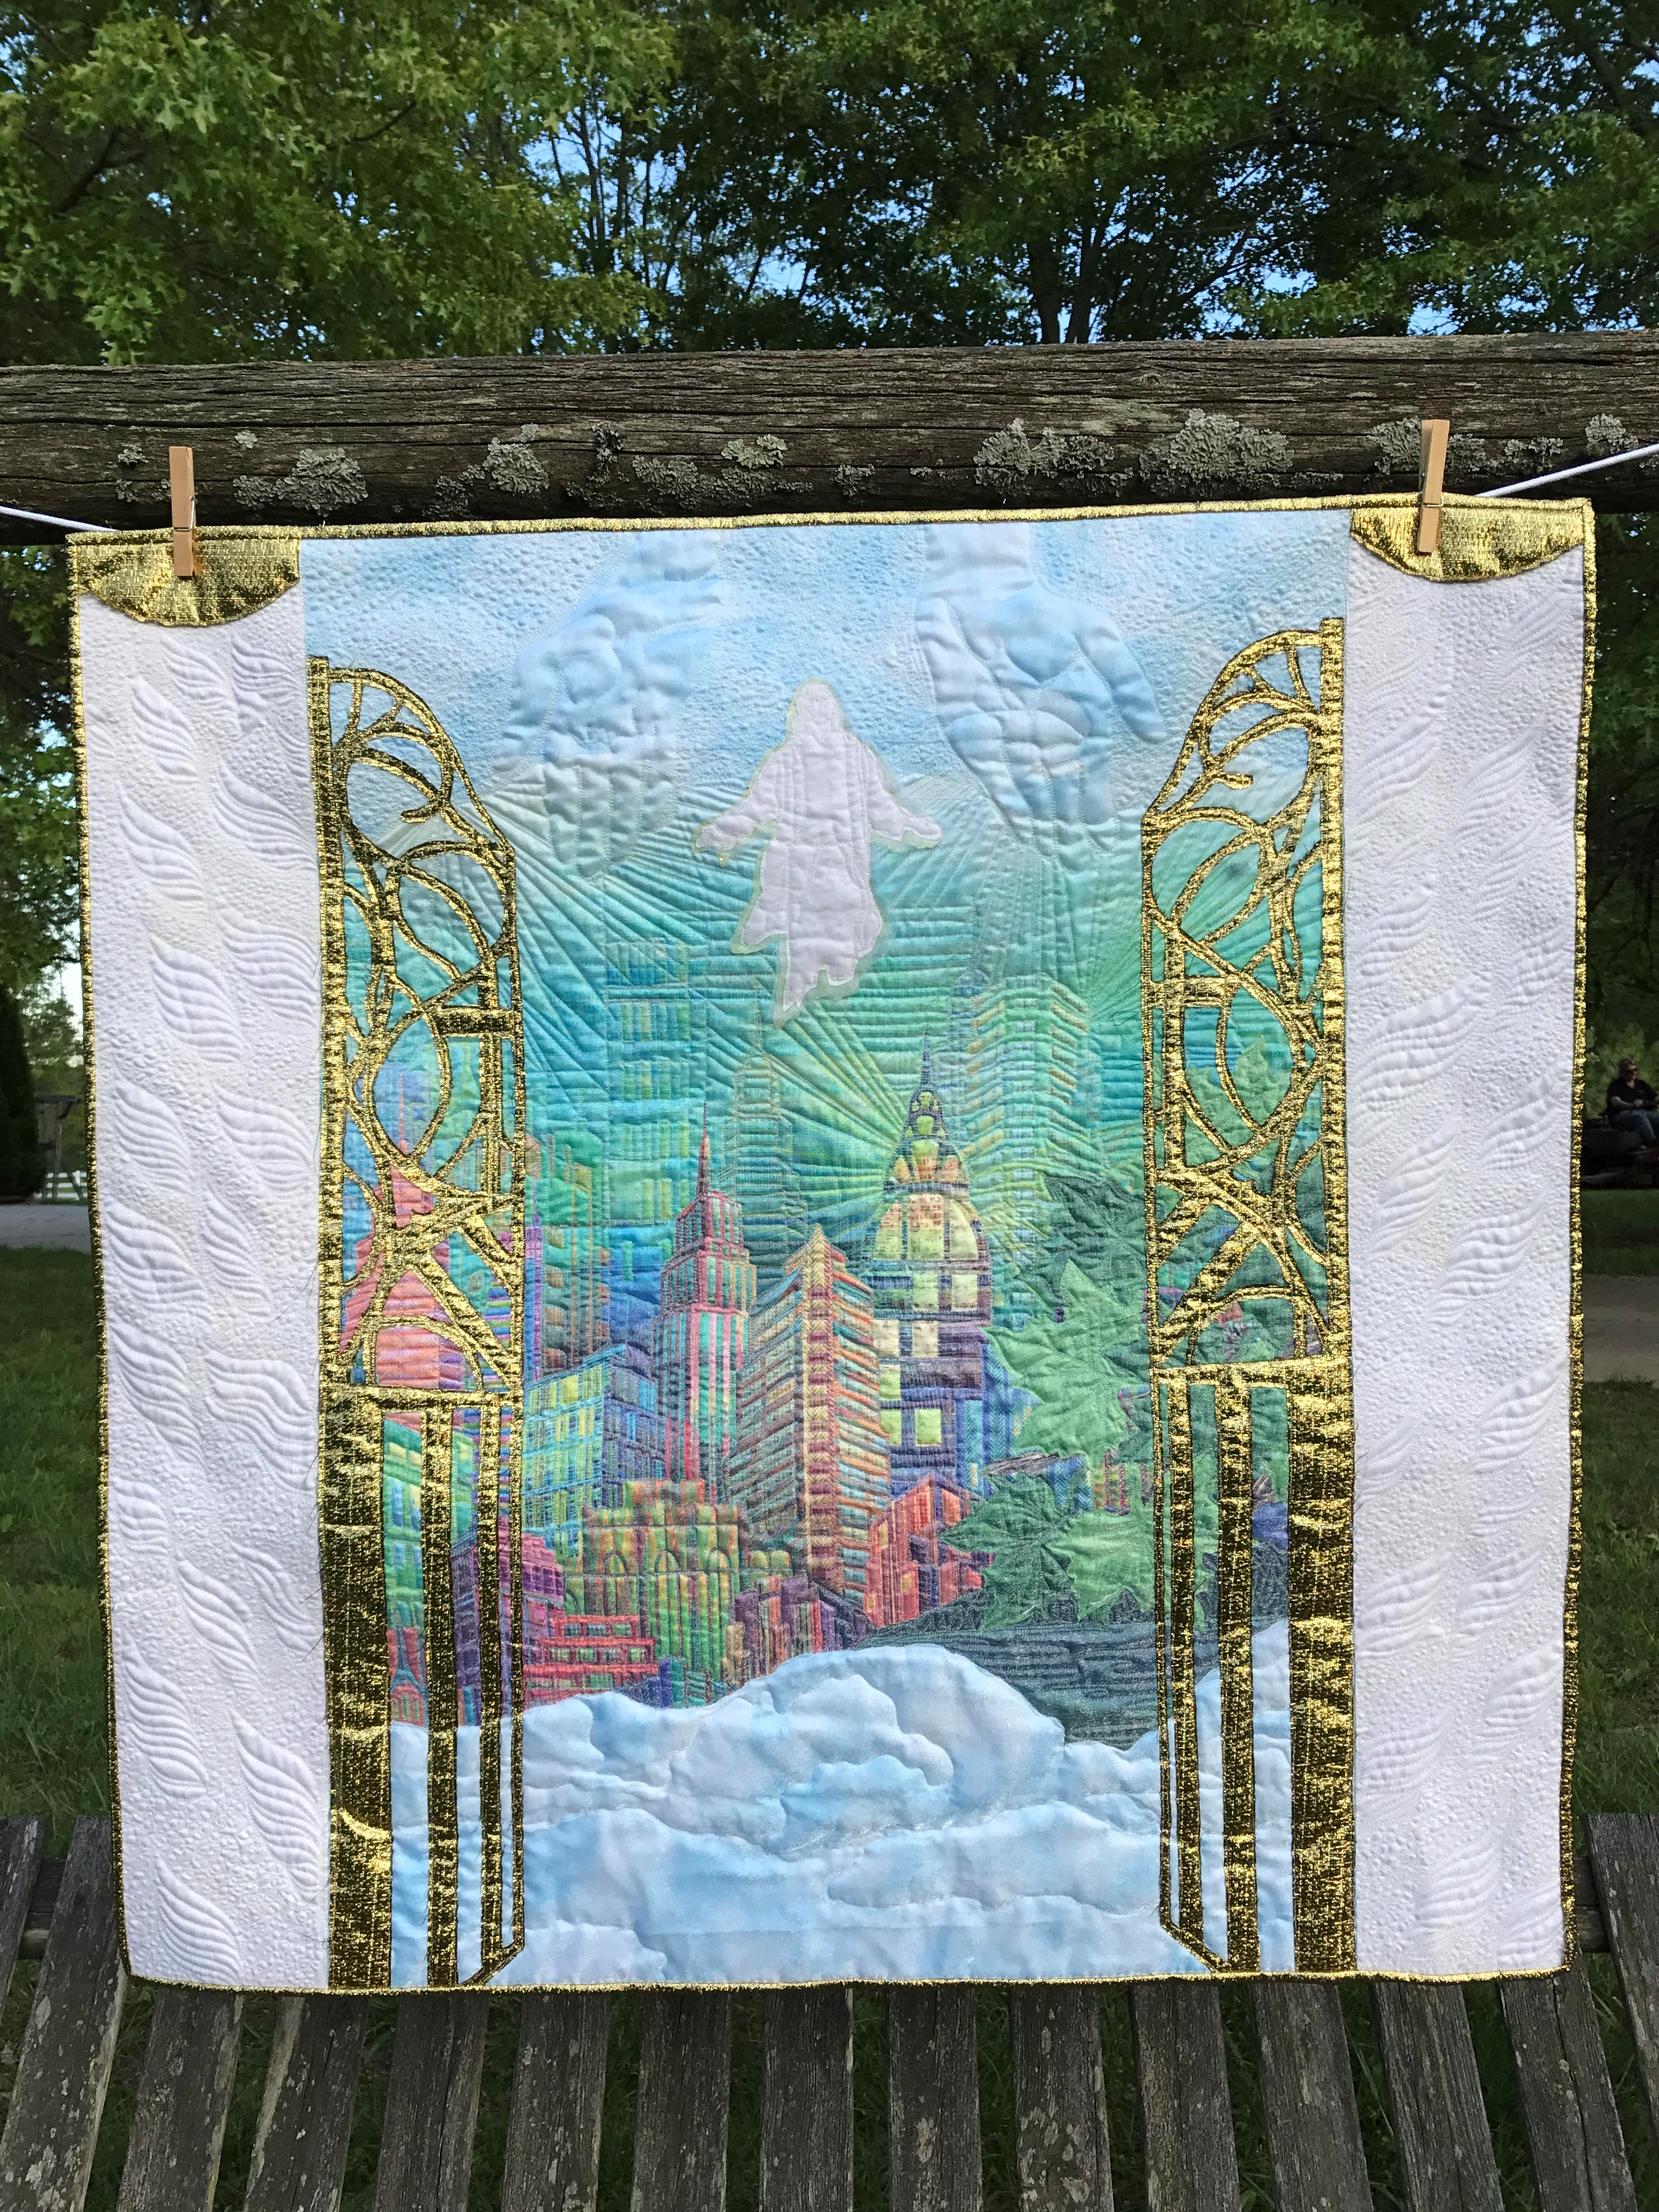 Image of Quilt Depicting Heaven